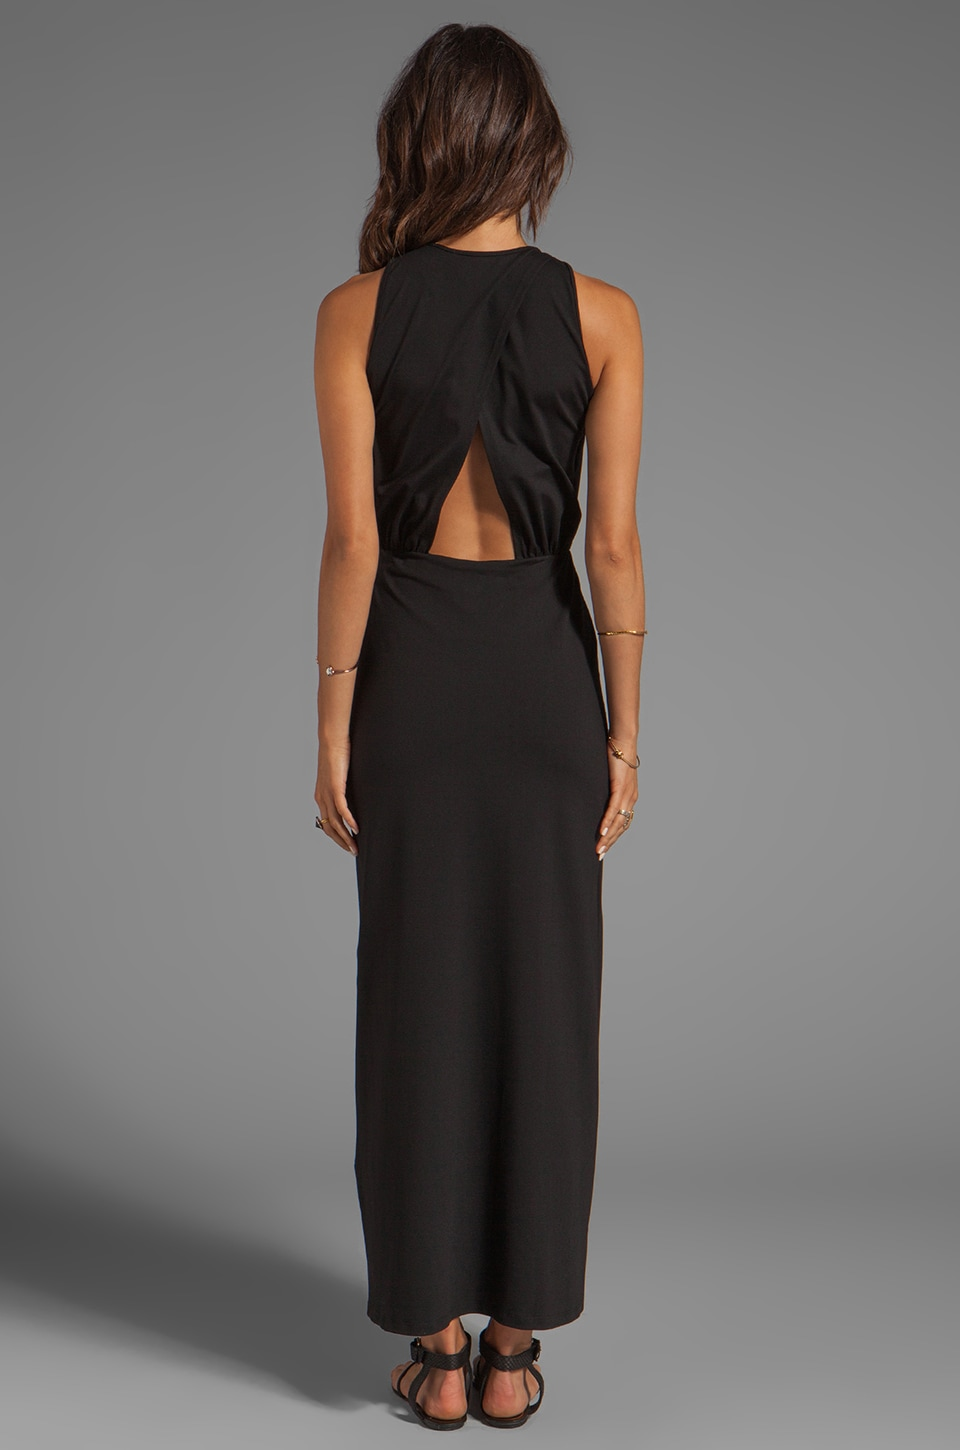 "Susana Monaco Madison Maxi 42"" Dress in Black"